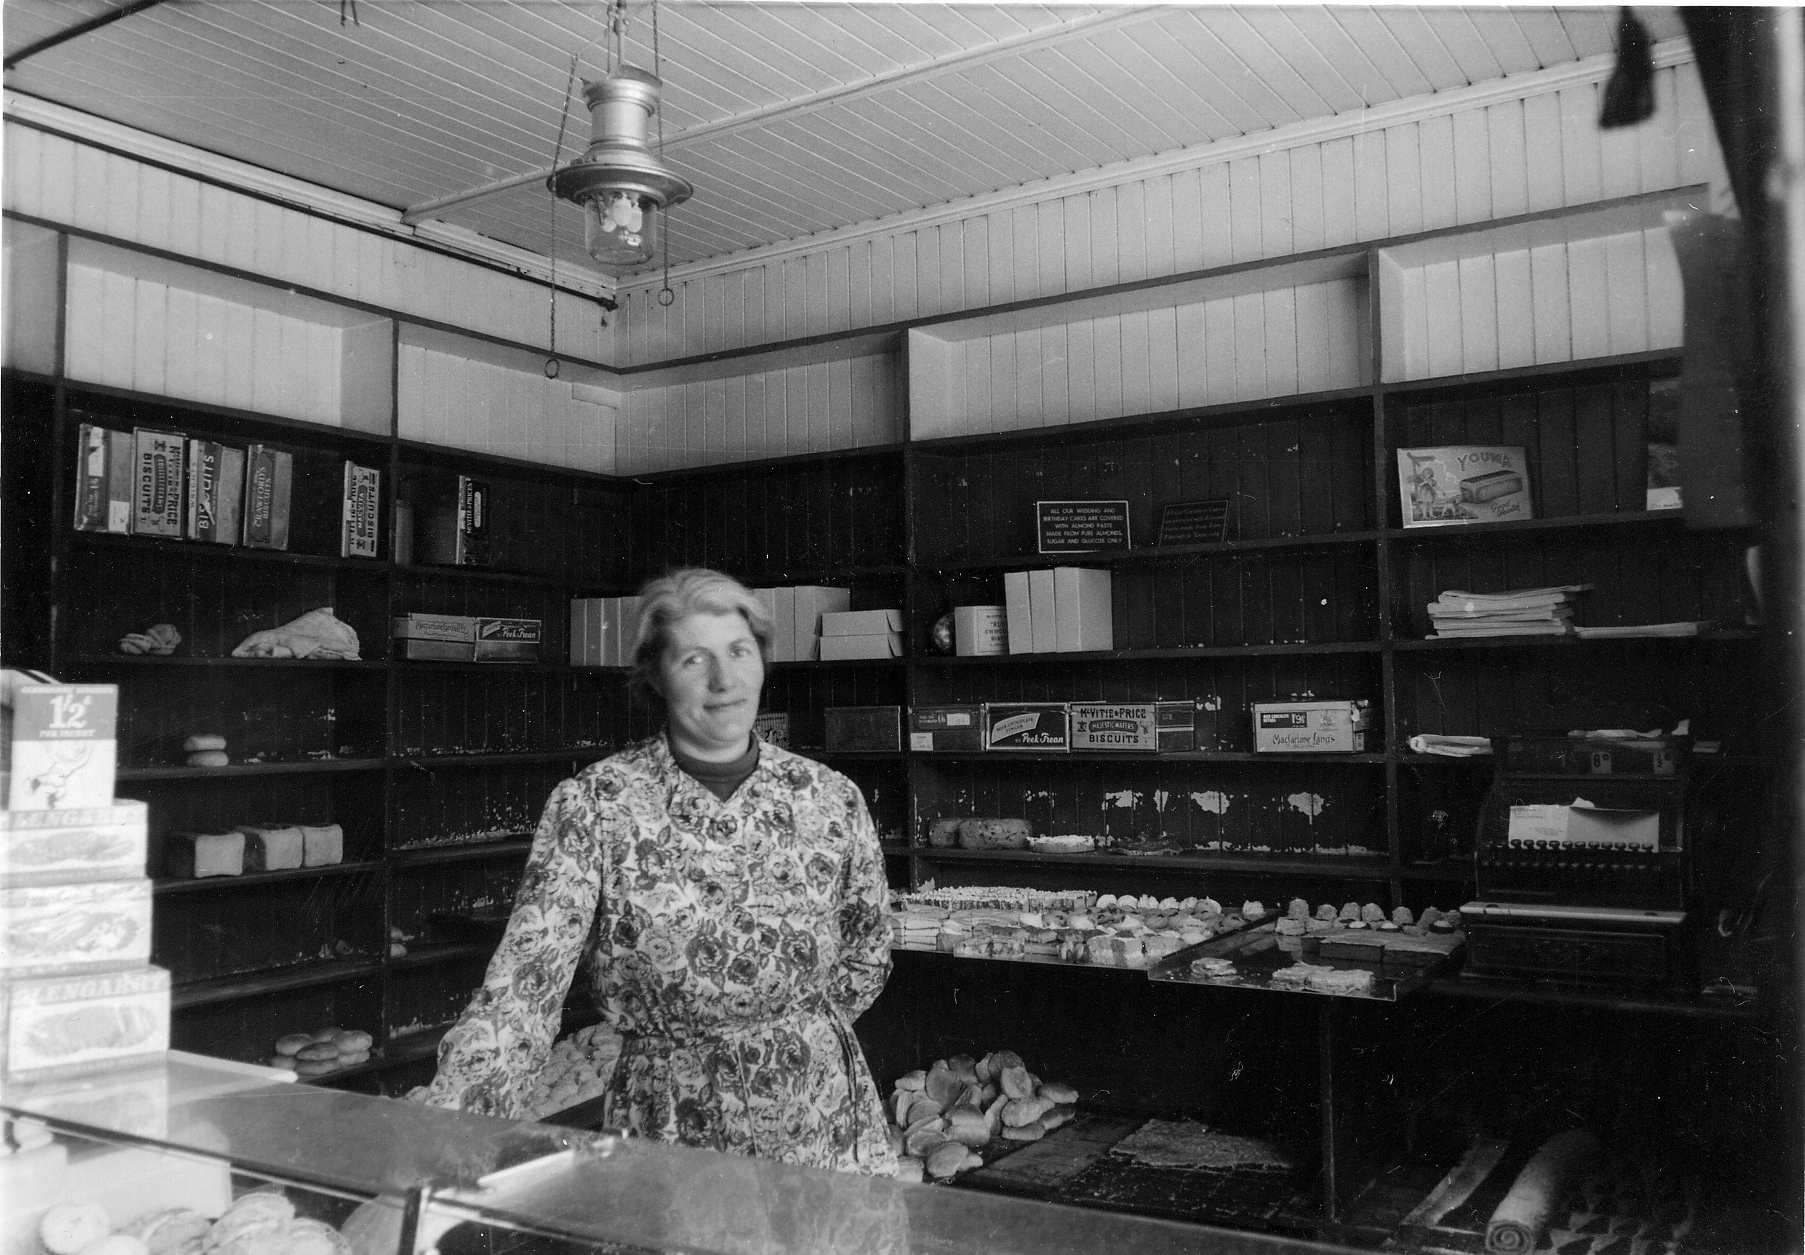 Woman Serving At Bakery Counter c.1950